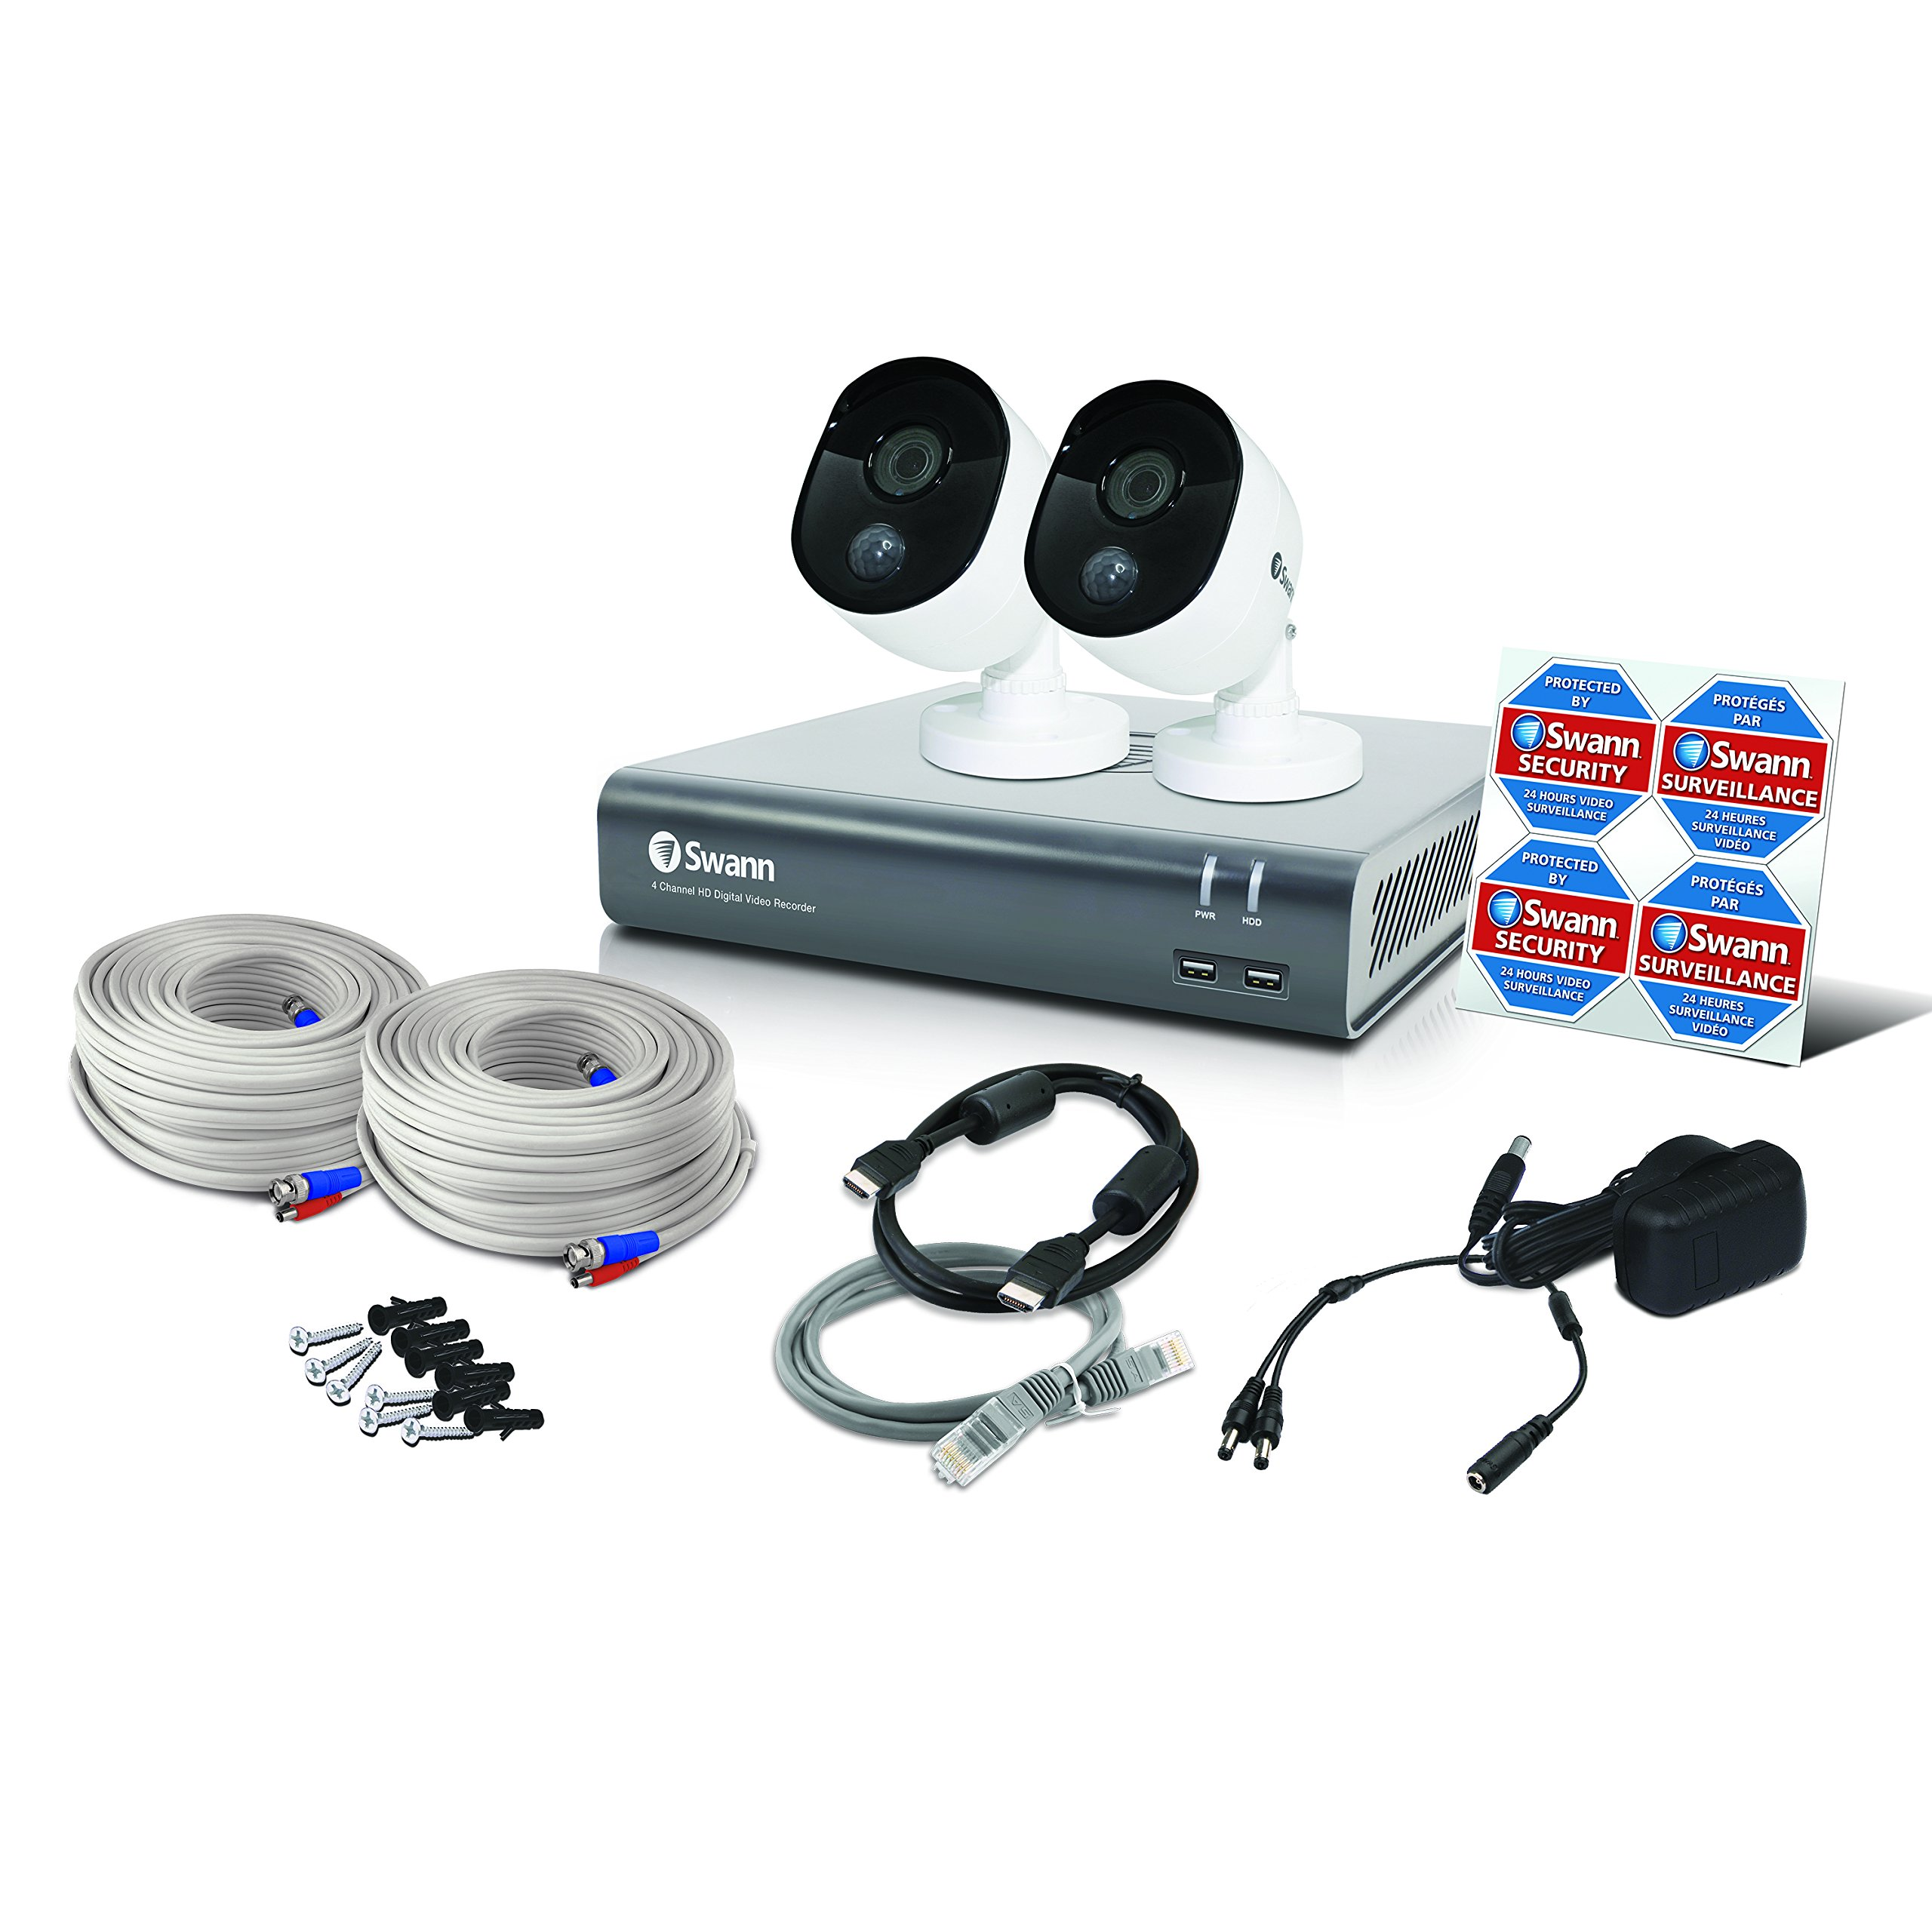 Swann 2 Camera 4 Channel 1080p DVR Security System | 1TB HDD, Heat & Motion Sensing + Night Vision by Swann